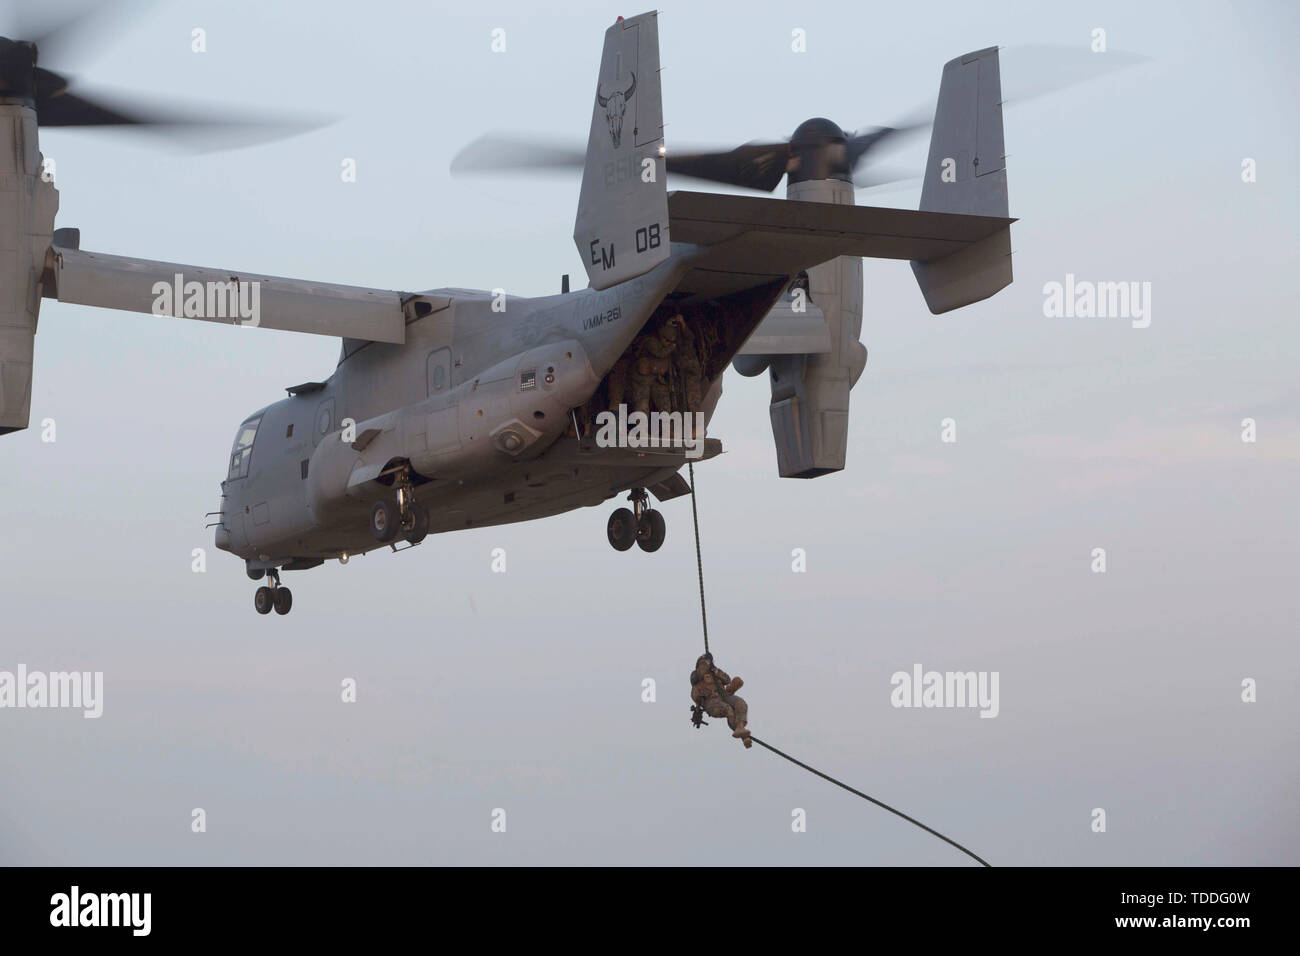 A U.S. Marine with the Special Purpose Marine Air-Ground Task Force-Crisis Response-Africa 19.2, Marine Forces Europe and Africa, descends a rope out of a U.S. Marine Corps MV-22B Osprey during fast- rope training at Naval Air Station Sigonella, Italy, June 10, 2019. SPMAGTF-CR-AF is deployed to conduct crisis-response and theater-security operations in Africa and promote regional stability by conducting military-to-military training exercises throughout Europe and Africa. (U.S. Marine Corps photo by Staff Sgt. Mark E Morrow Jr.) Stock Photo